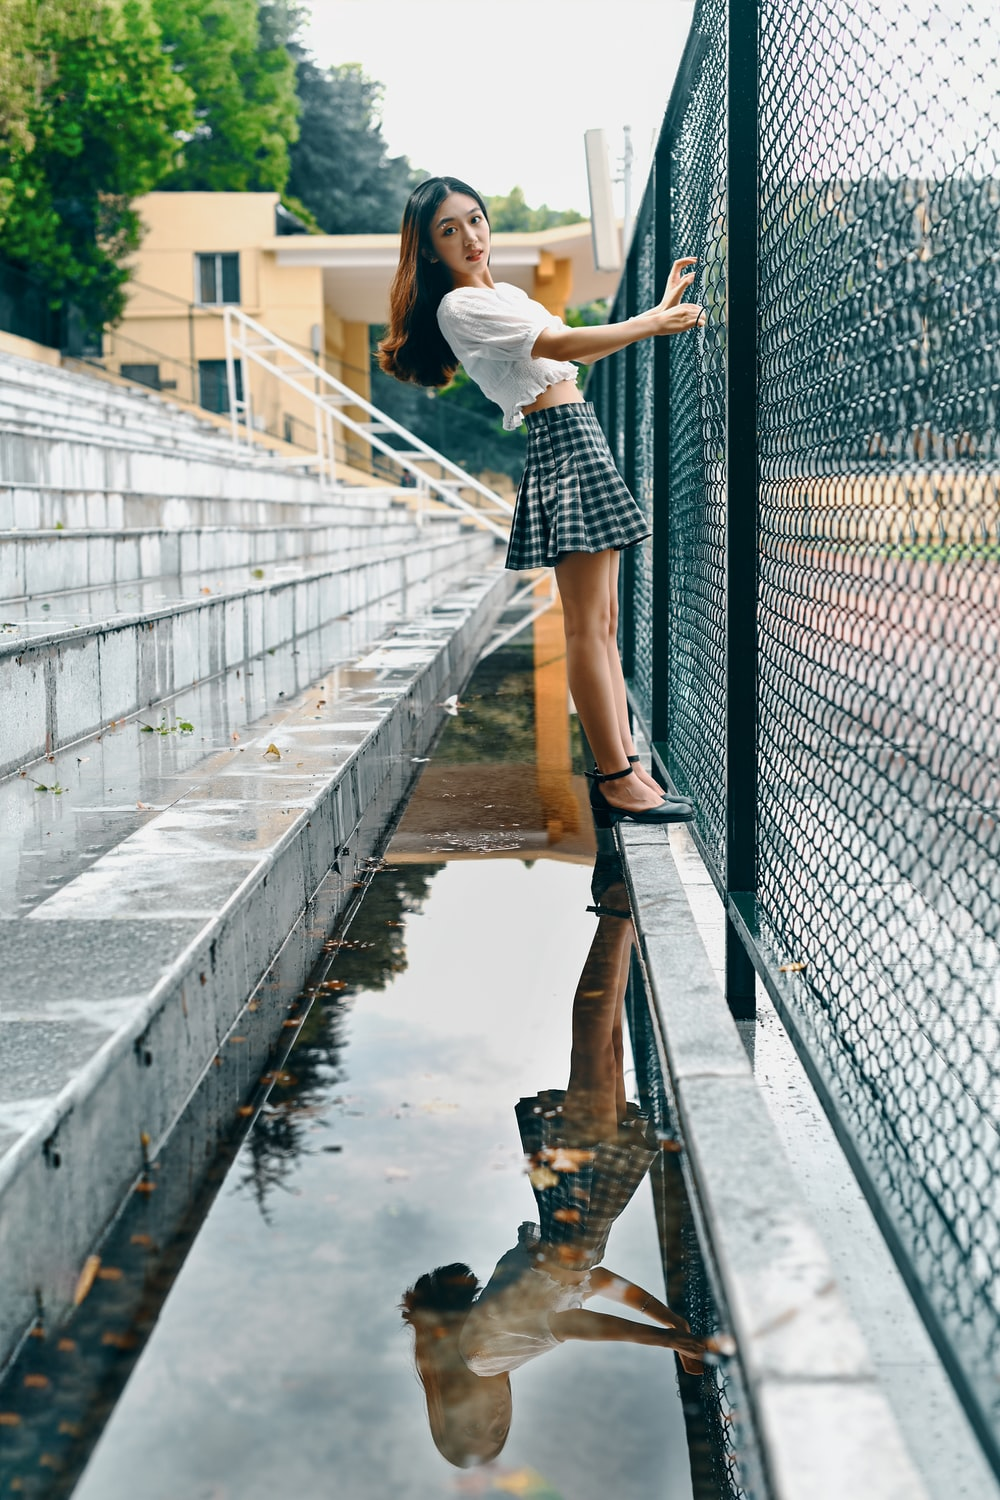 woman in white shirt and black and white skirt standing on bridge during daytime